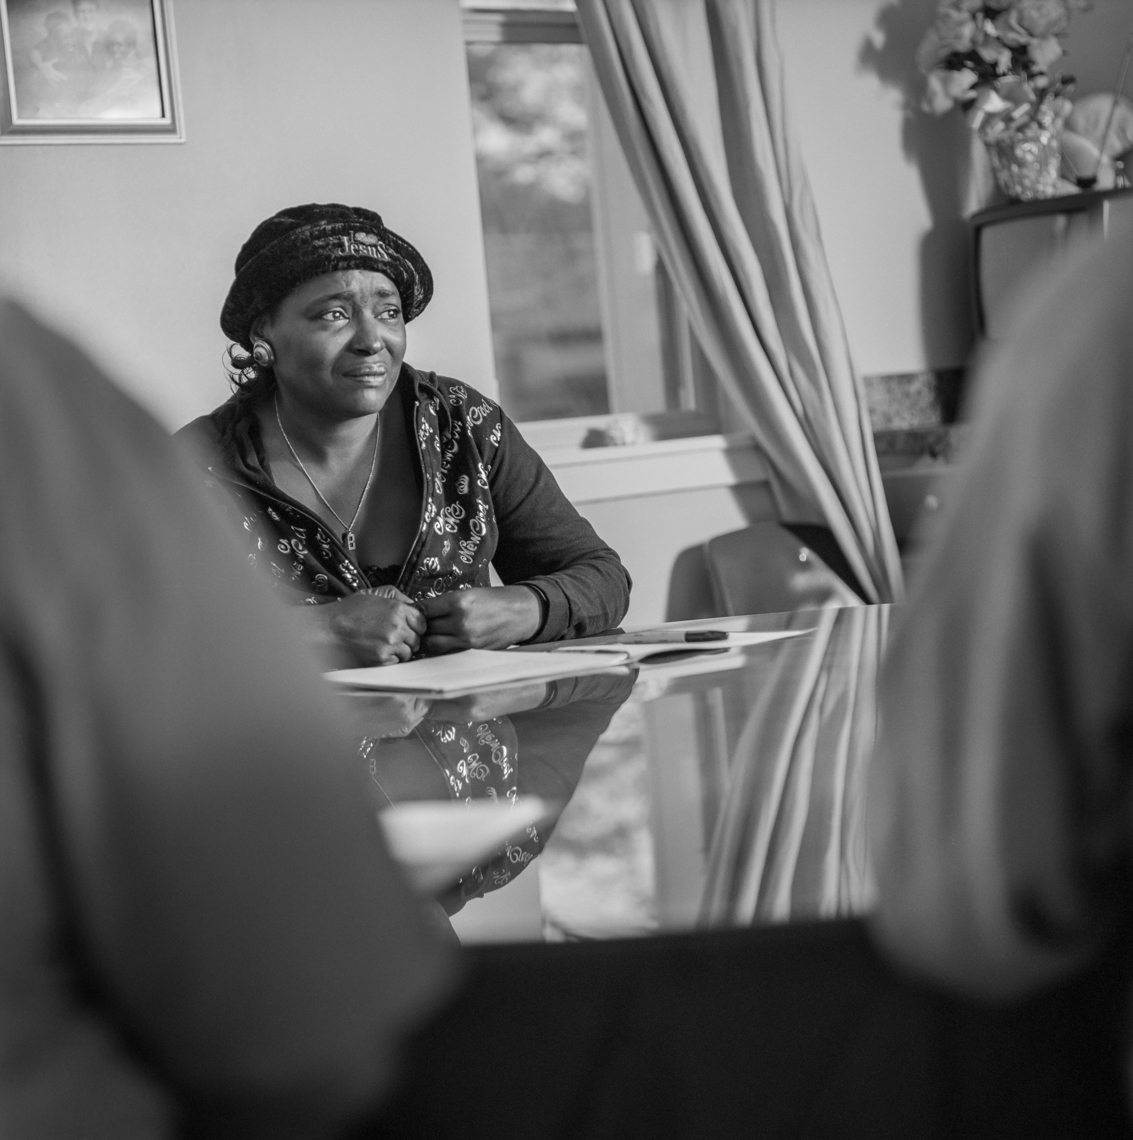 Women in Recovery from prostitution, sex trafficking, abuse, drug, addiction, portrait, resilience, authentic, B&W, film, Nashville, New Orleans, Chicago, Washington, D.C., Documentary and editorial portrait photographer photojournalist Kristina Krug